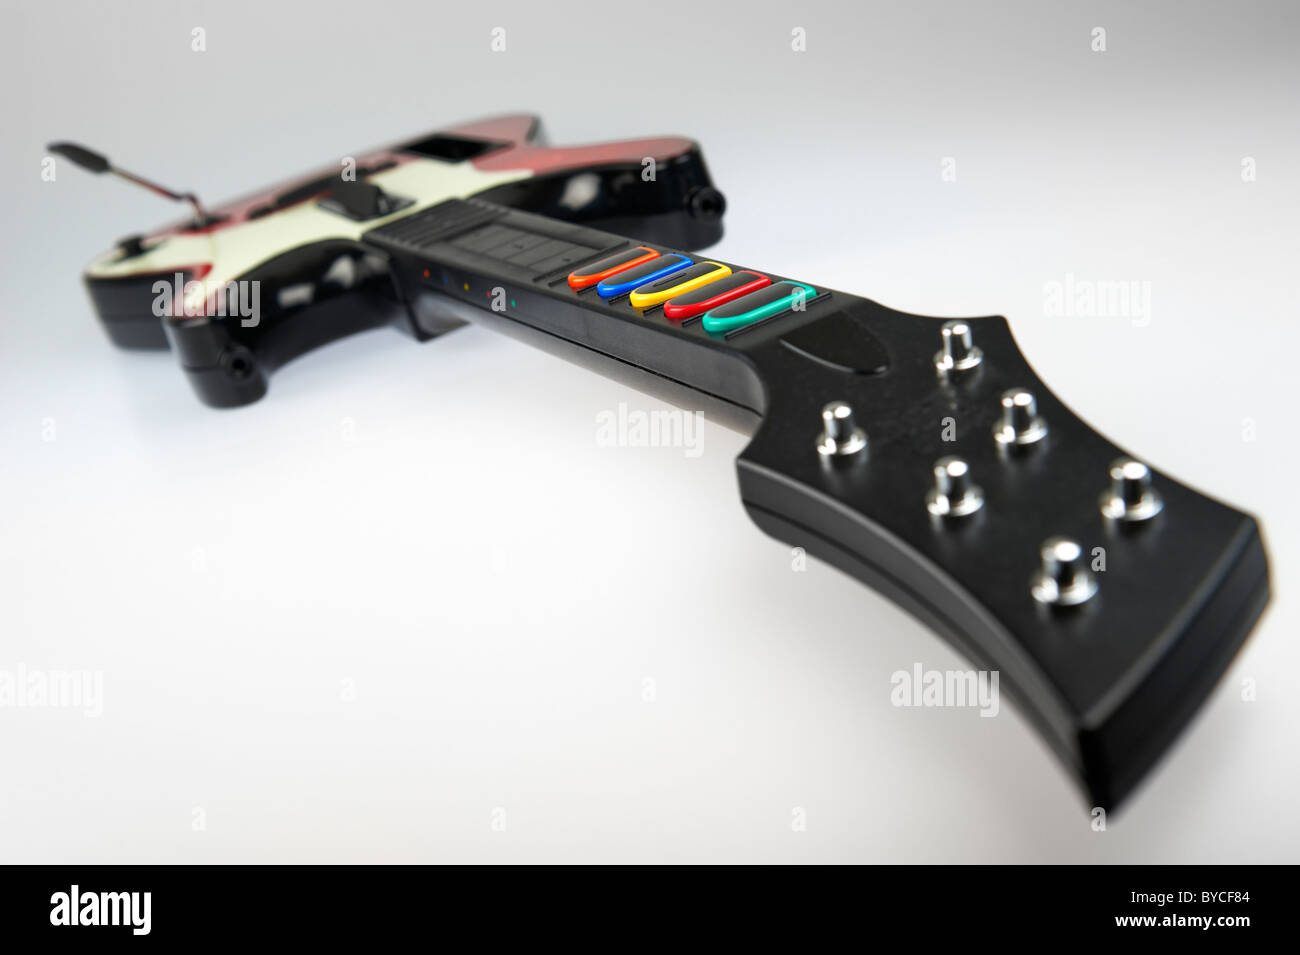 hight resolution of band hero guitar controller from the video game franchise guitar hero stock image